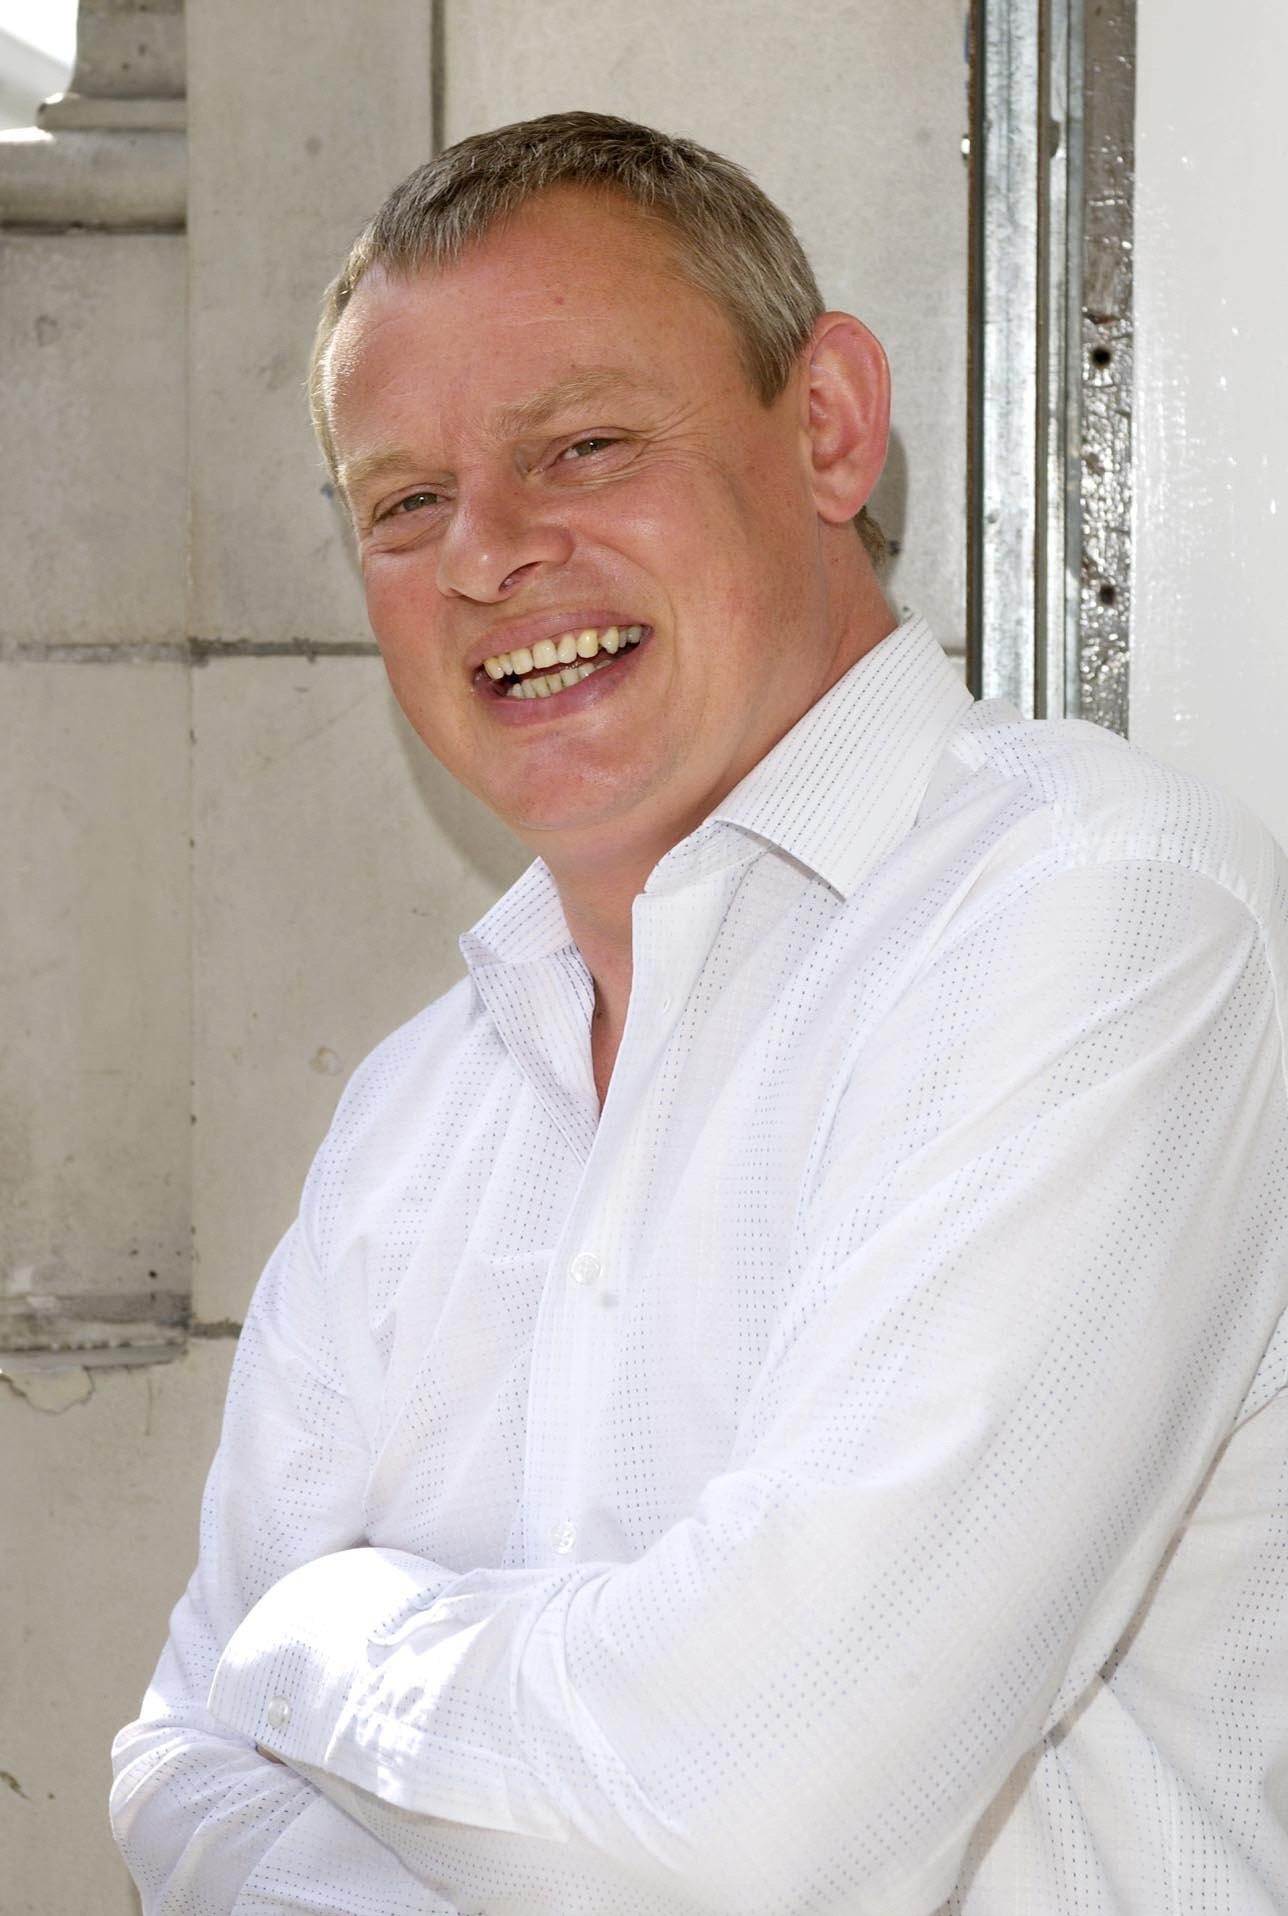 Did Martin Clunes turn down Doctor Who?